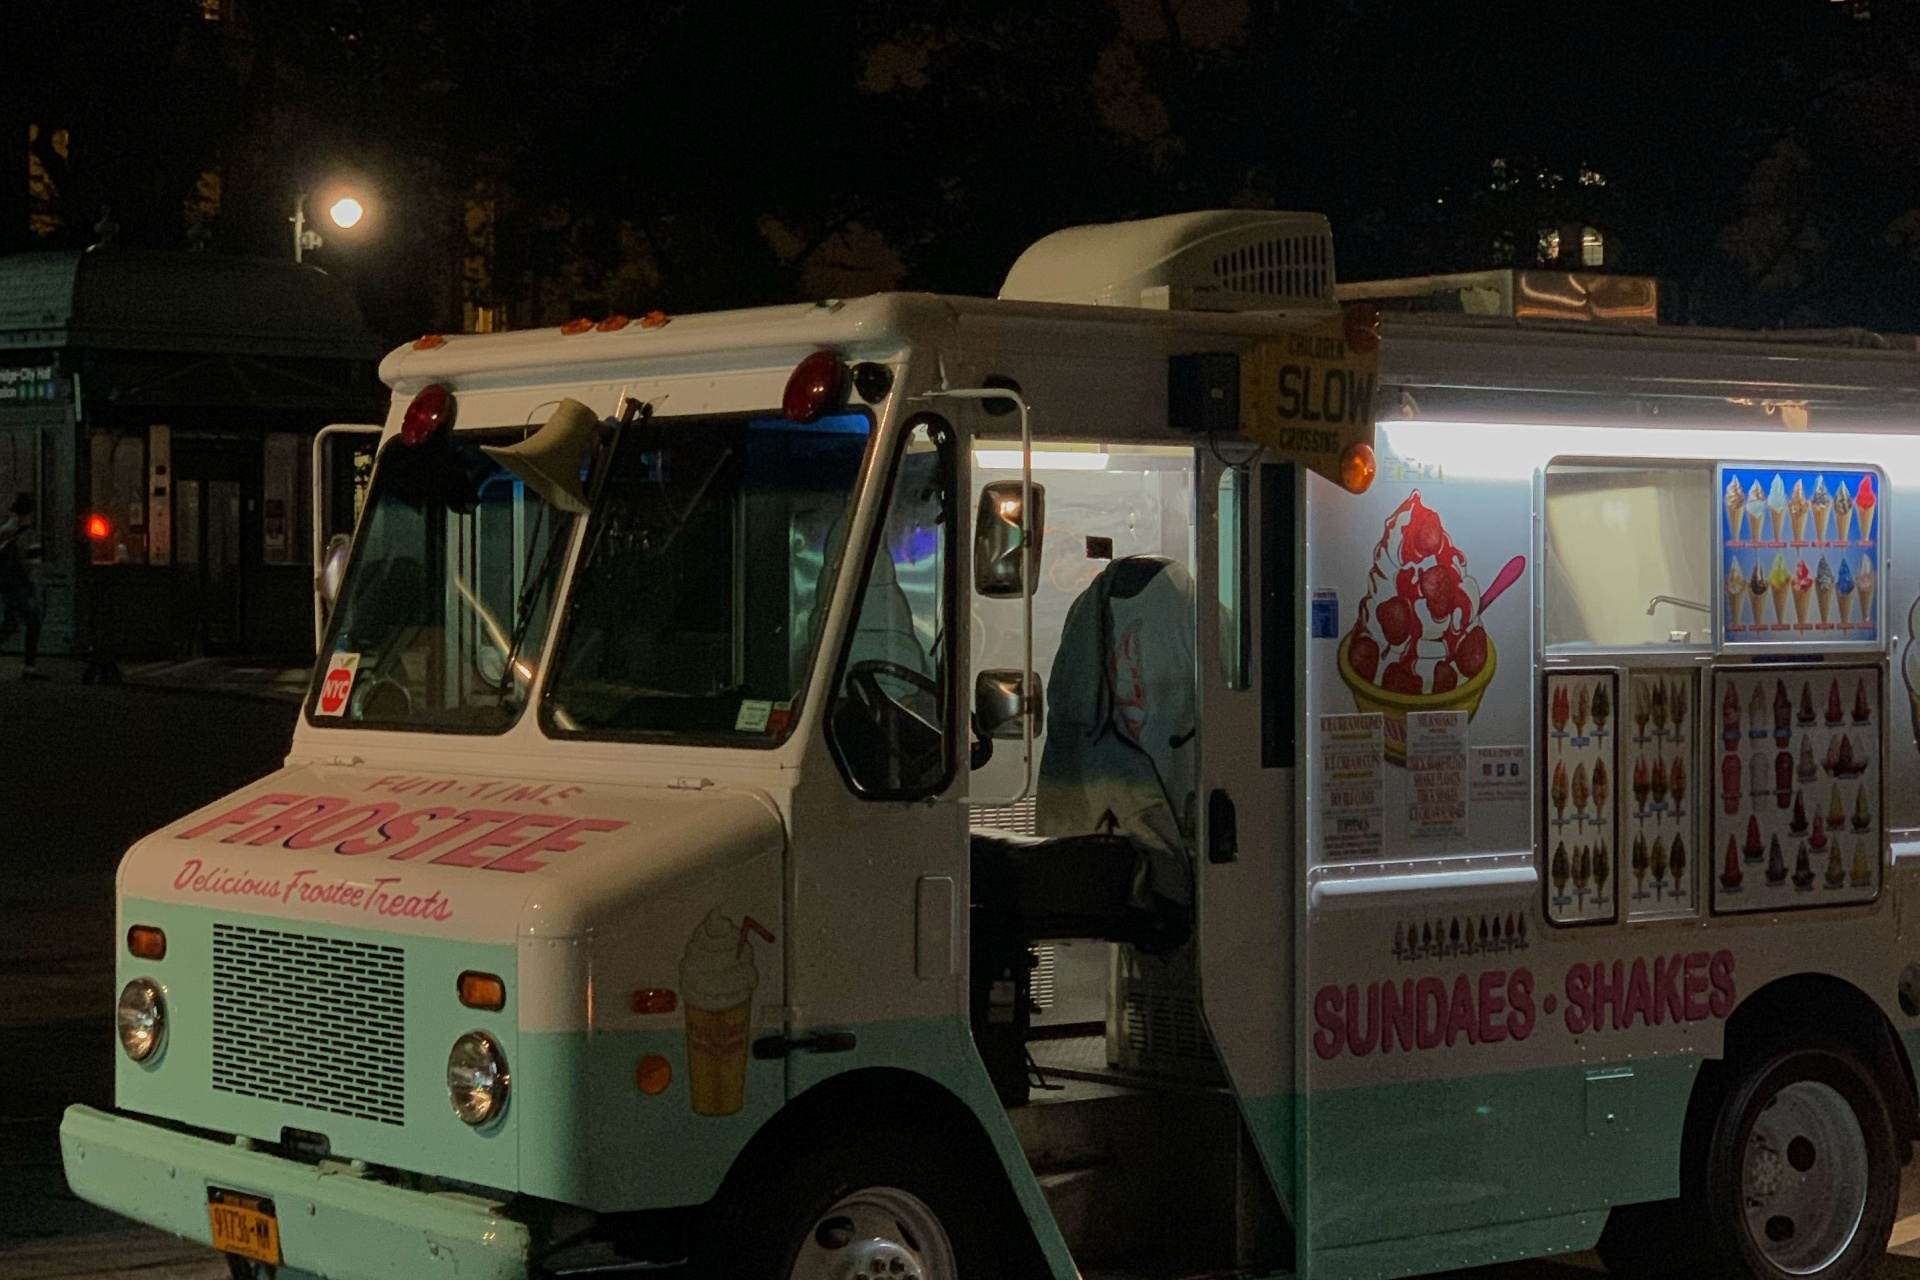 Don't Listen To The Song Playing From The Ice Cream Truck